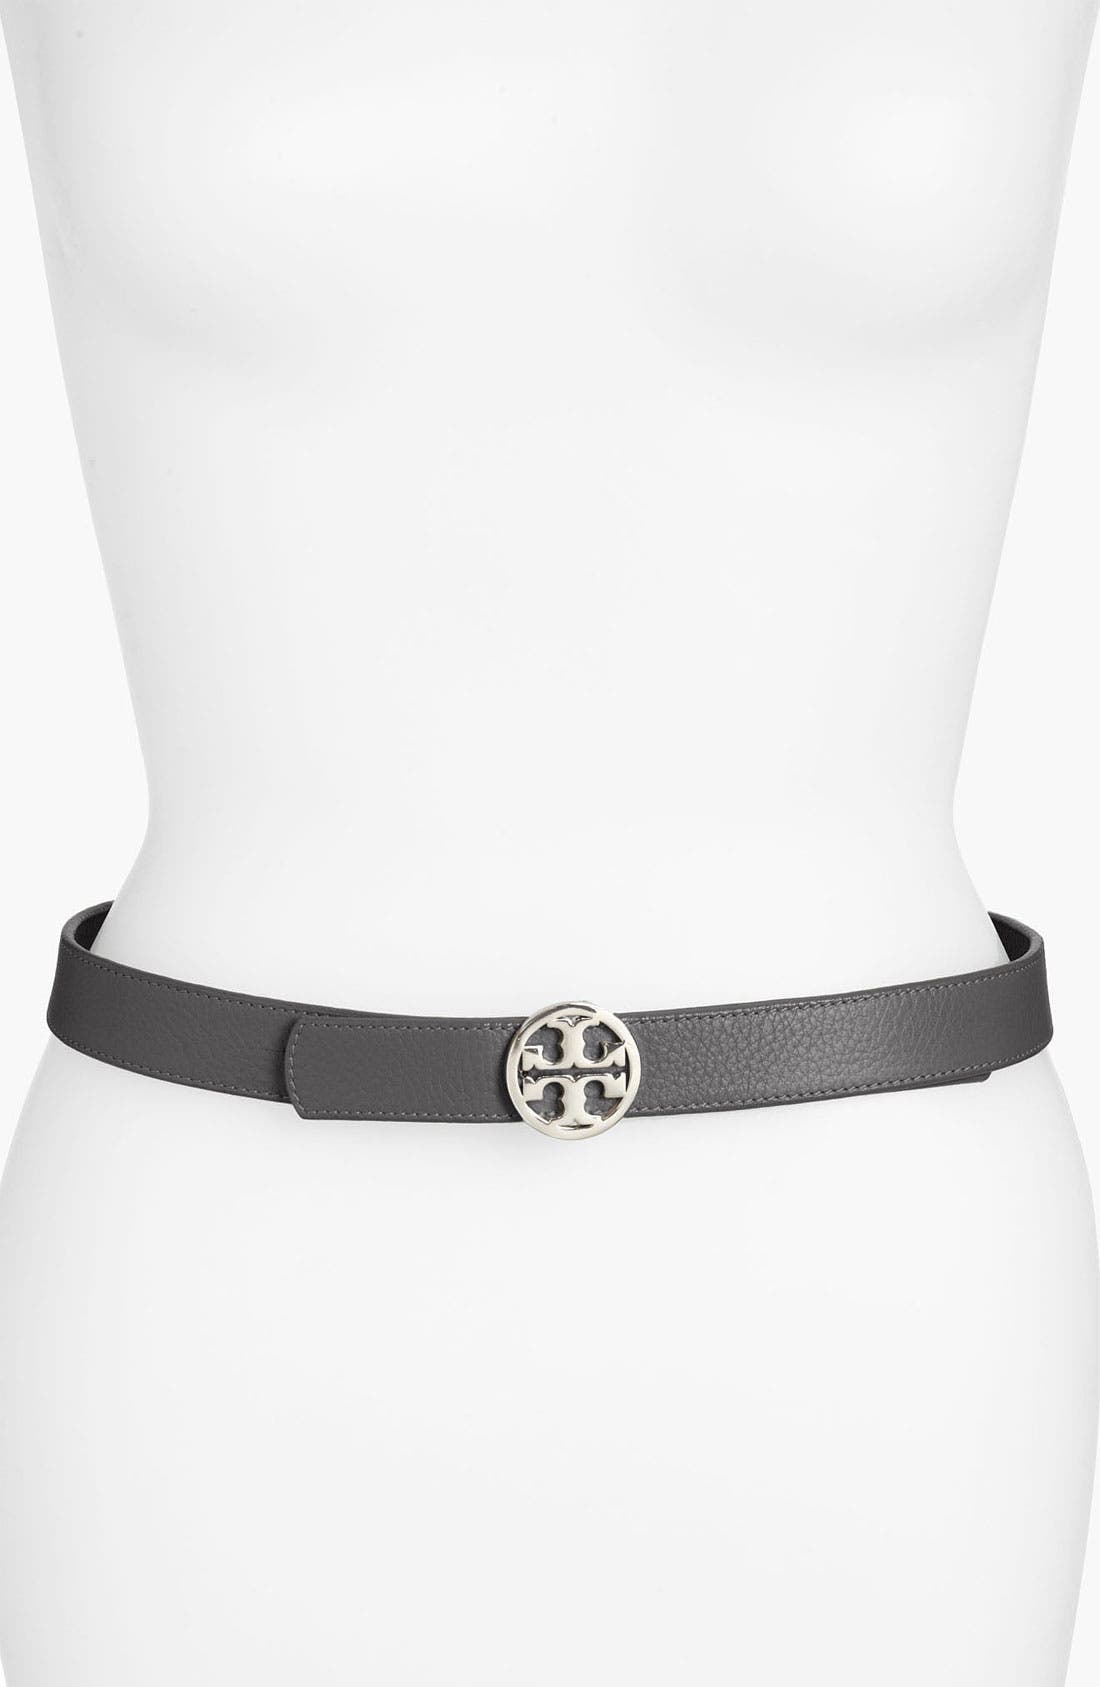 Main Image - Tory Burch 'Classic Tory Logo' Saffiano Leather Belt